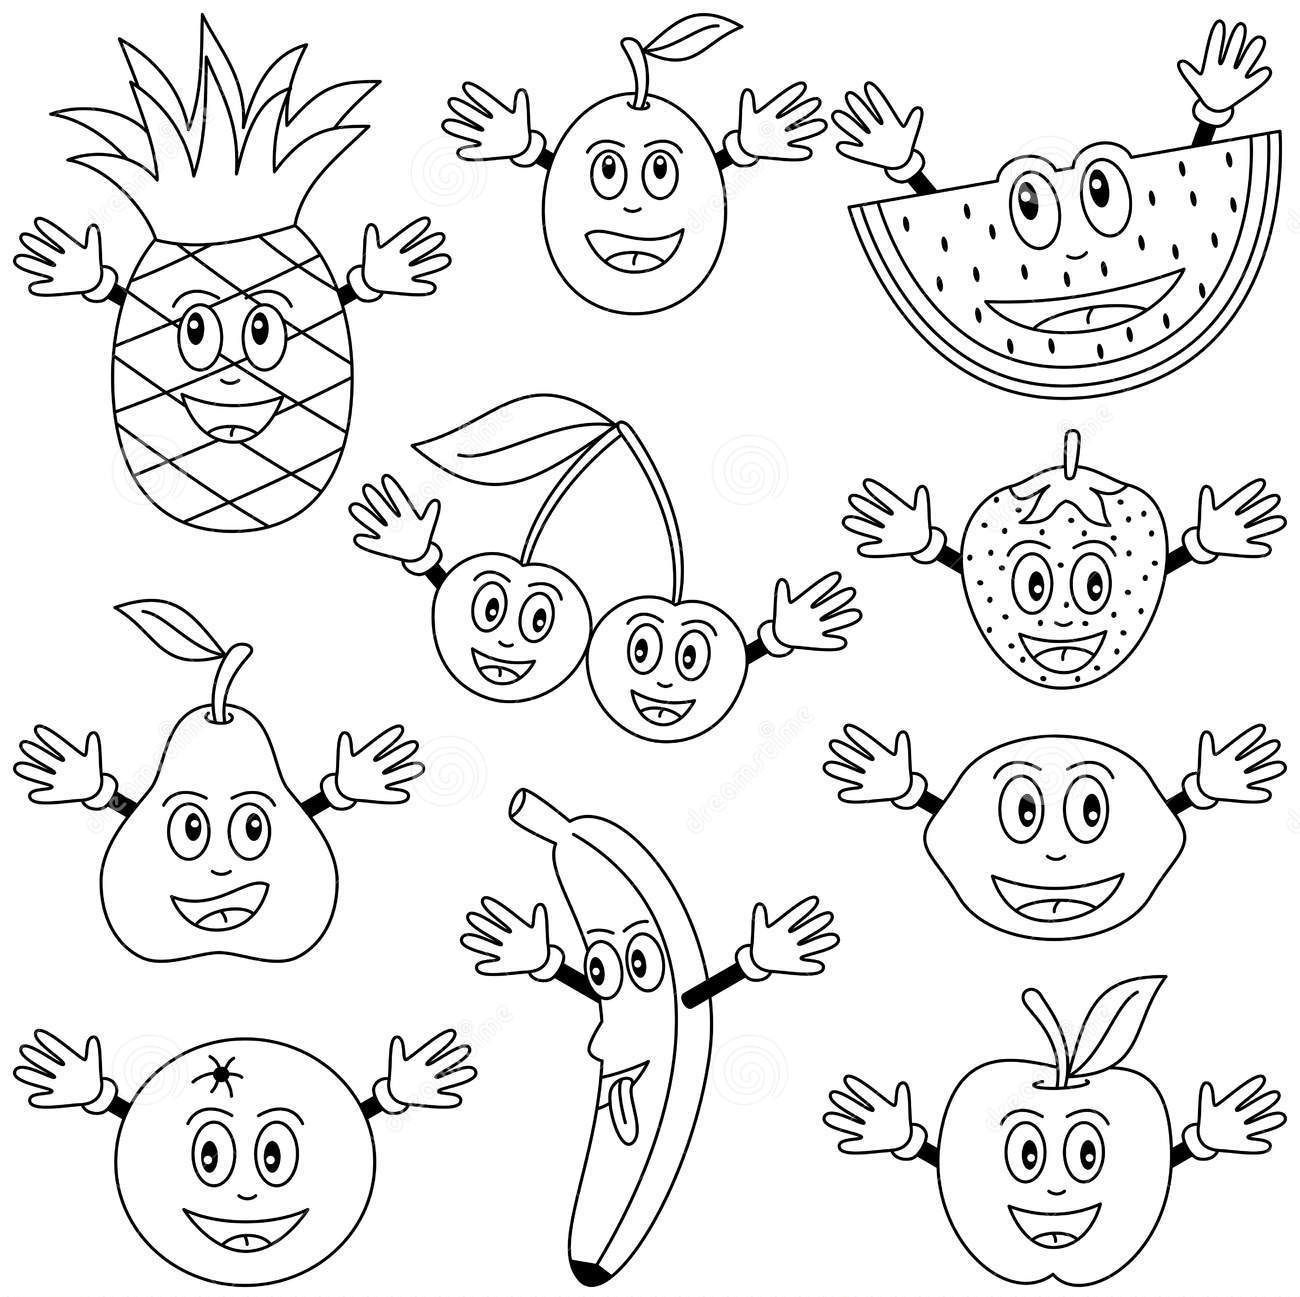 Preschool counting fruits worksheet printable - Cartoon Fruits Coloring Pages